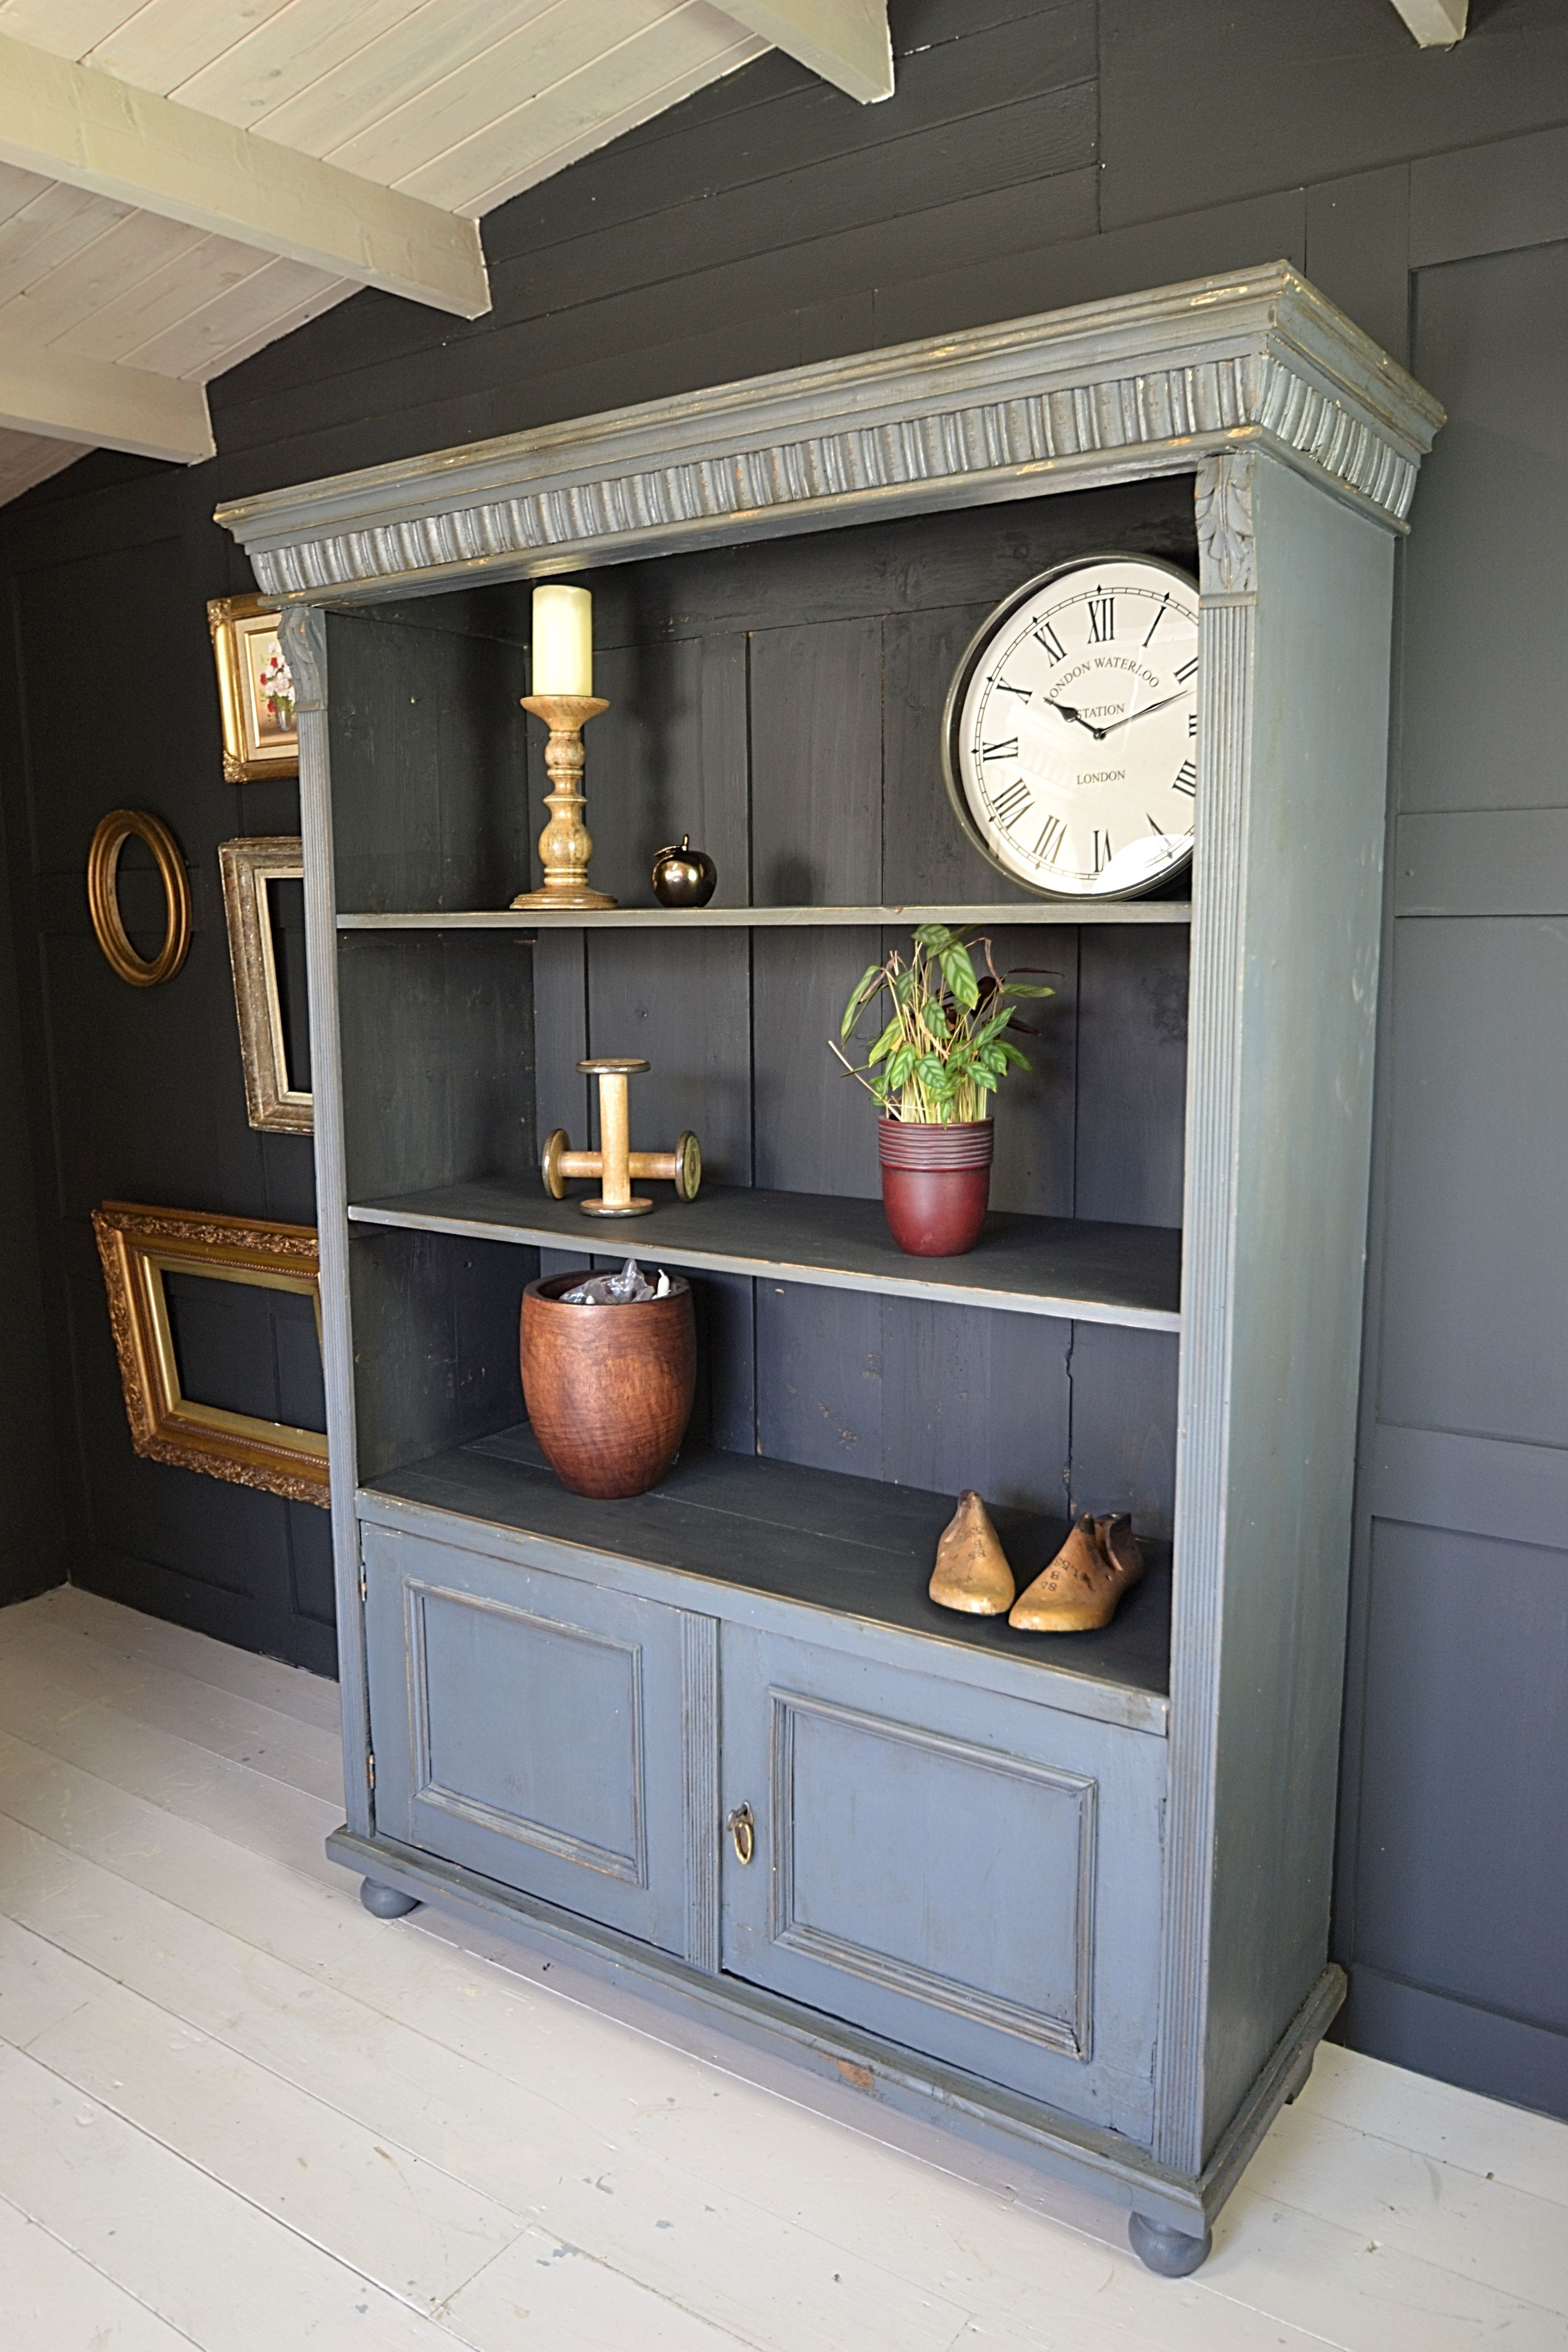 This Dutch Open Bookcase With Cupboard Doors Has Fantastic Rustic Appeal  And Makes The Perfect Storage For Any Home. The Sophisticated Blue Grey  Colour Goes ...